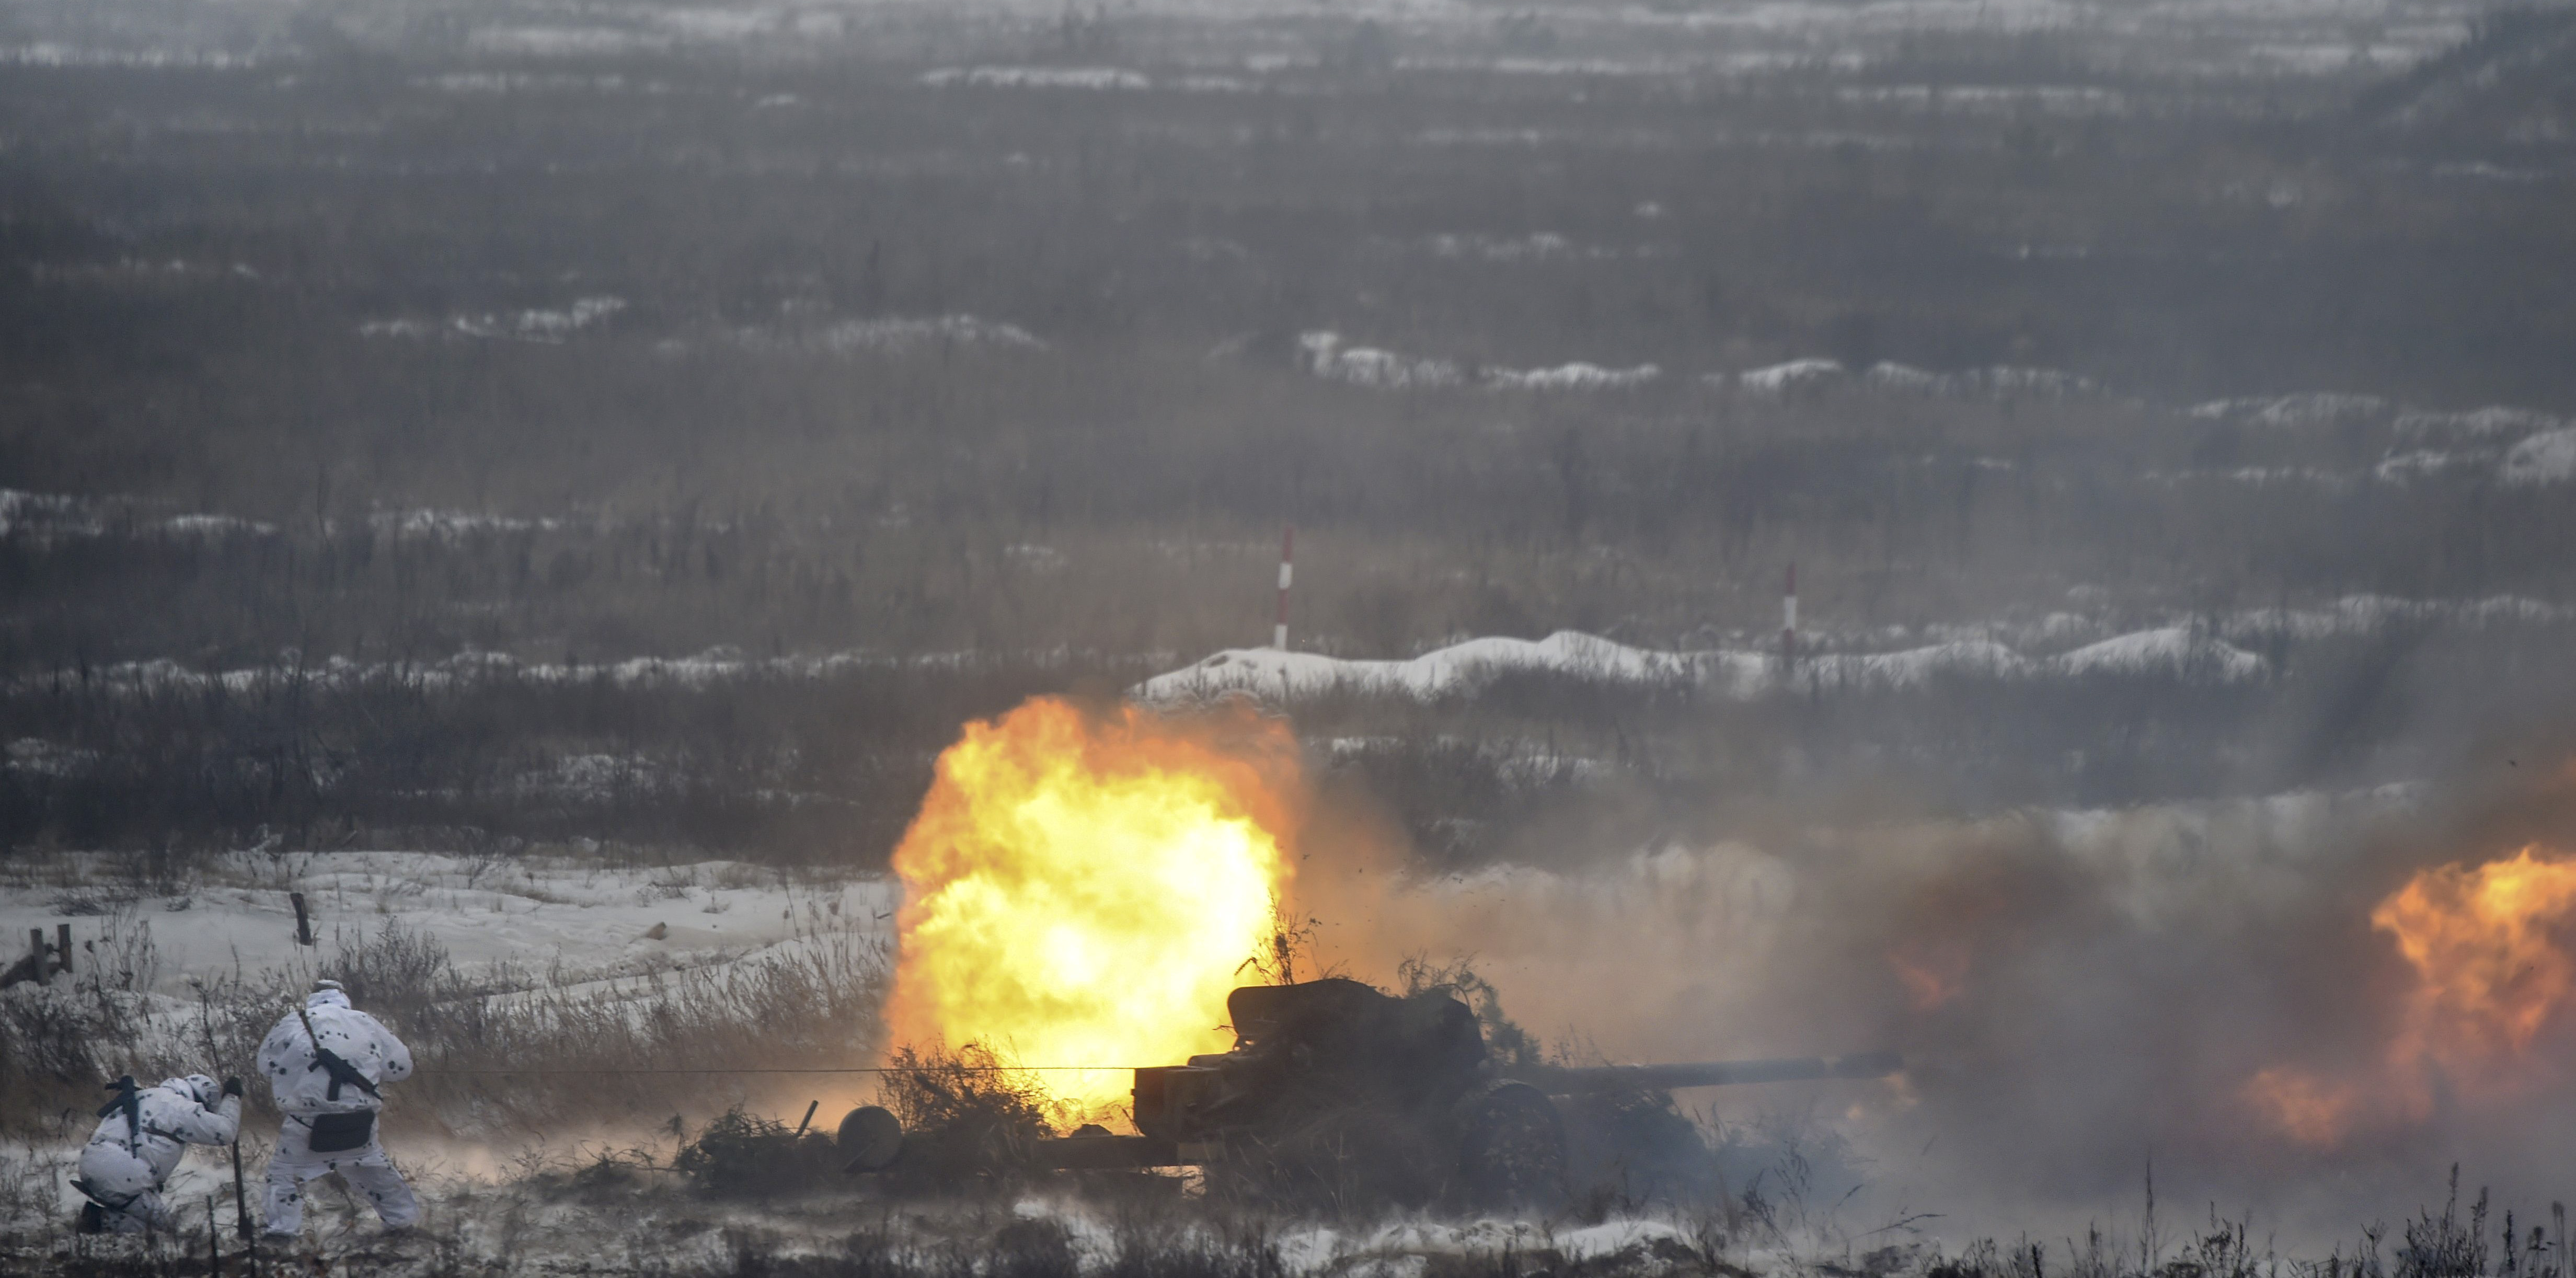 Ukrainian servicemen fire a gun as they take part in brigade tactical exercises with combat shooting near Goncharivske willage, Chernihiv region, not far from the border with Russia on December 3, 2018 - Tensions between Ukraine and Russia rose on November 25, when Russian forces seized three Ukrainian navy vessels and their crew. Ukraine imposed martial law for 30 days in 10 regions that border Russia, the Black Sea and the Azov Sea on November 28. (SERGEI SUPINSKY/AFP/Getty Images)